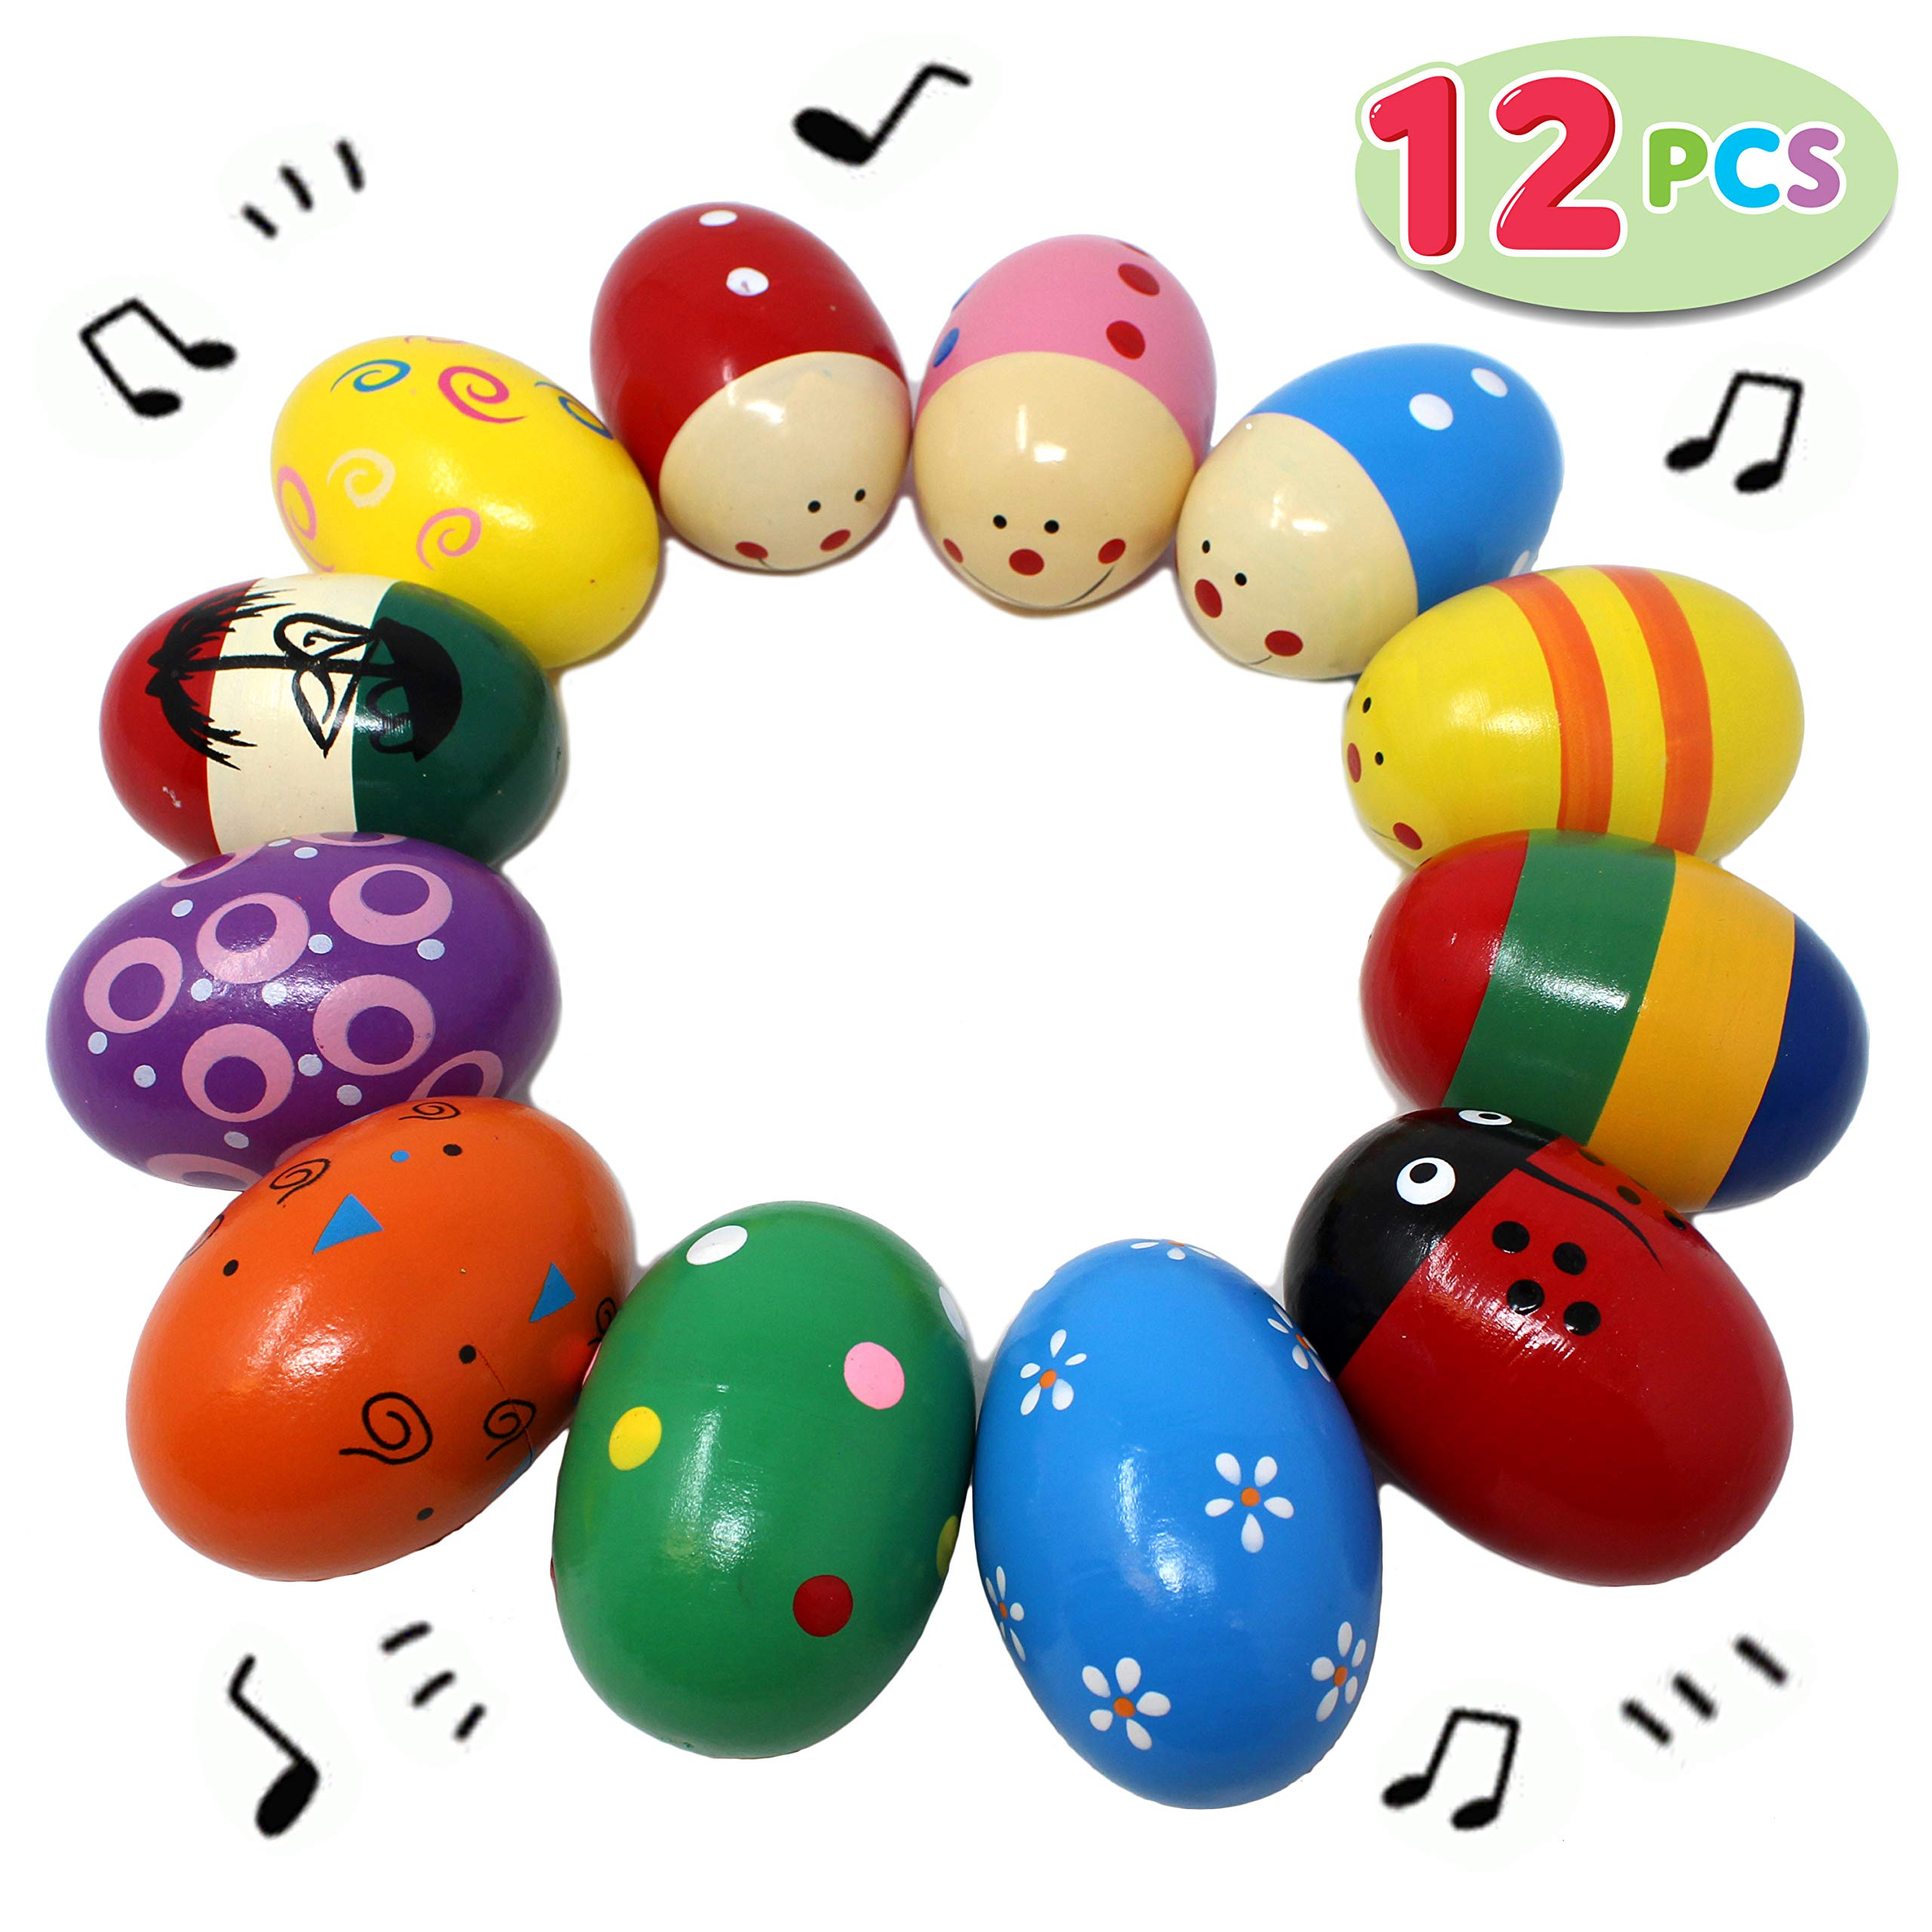 Wooden Percussion Musical Egg Maracas Egg Shakers With Assorted colors Lovely Pattern 6PCS